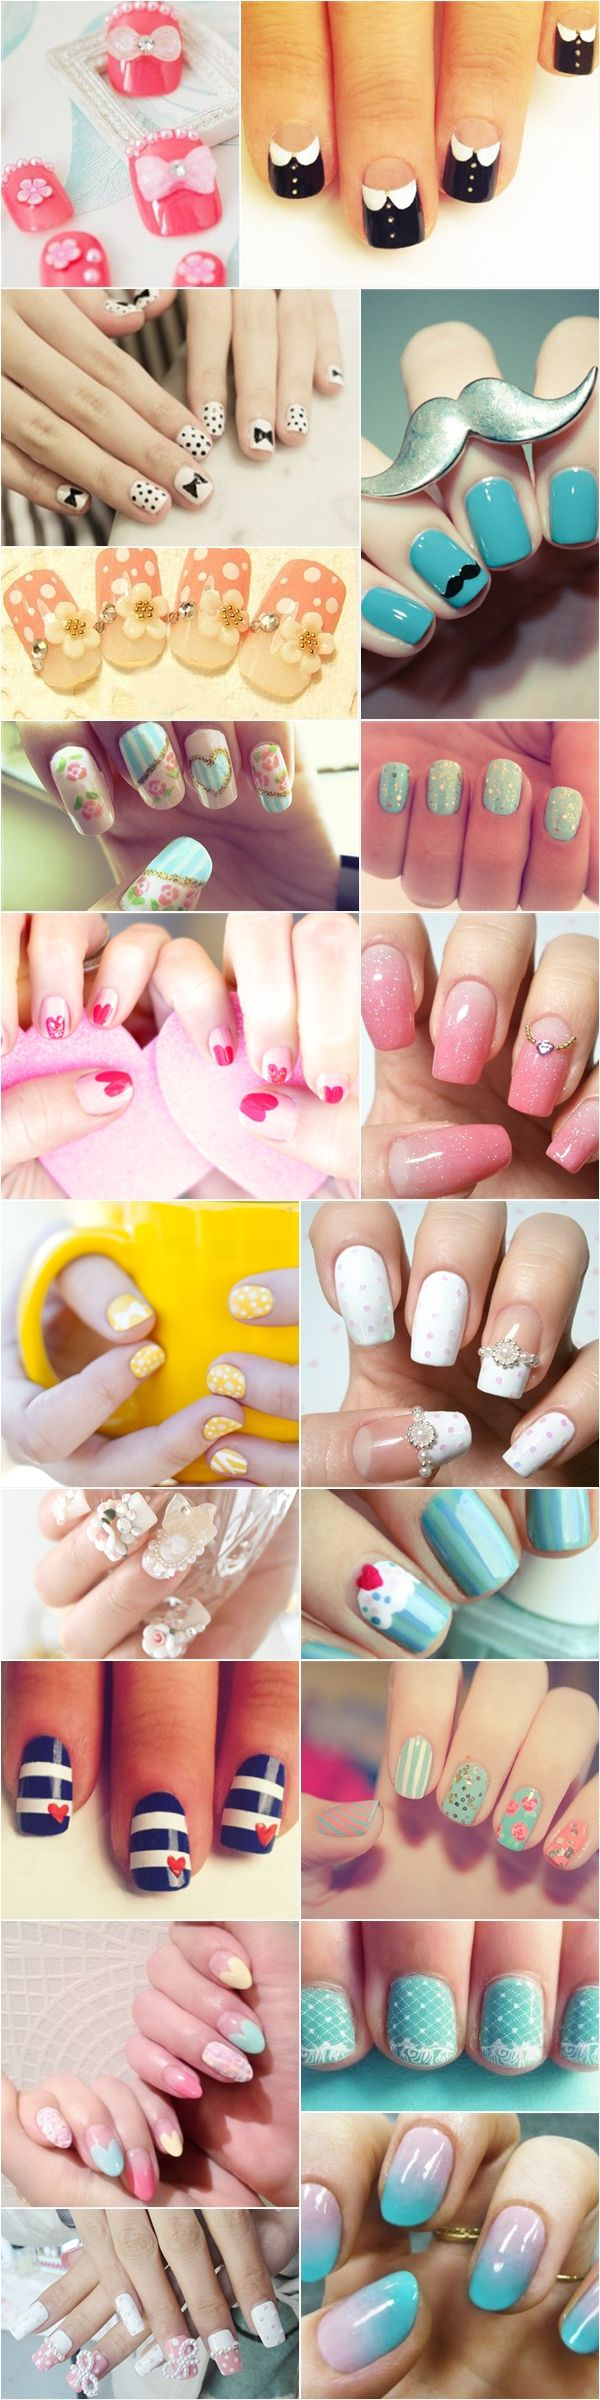 Lovely nail designs for brides    #wedding #nails #manicure